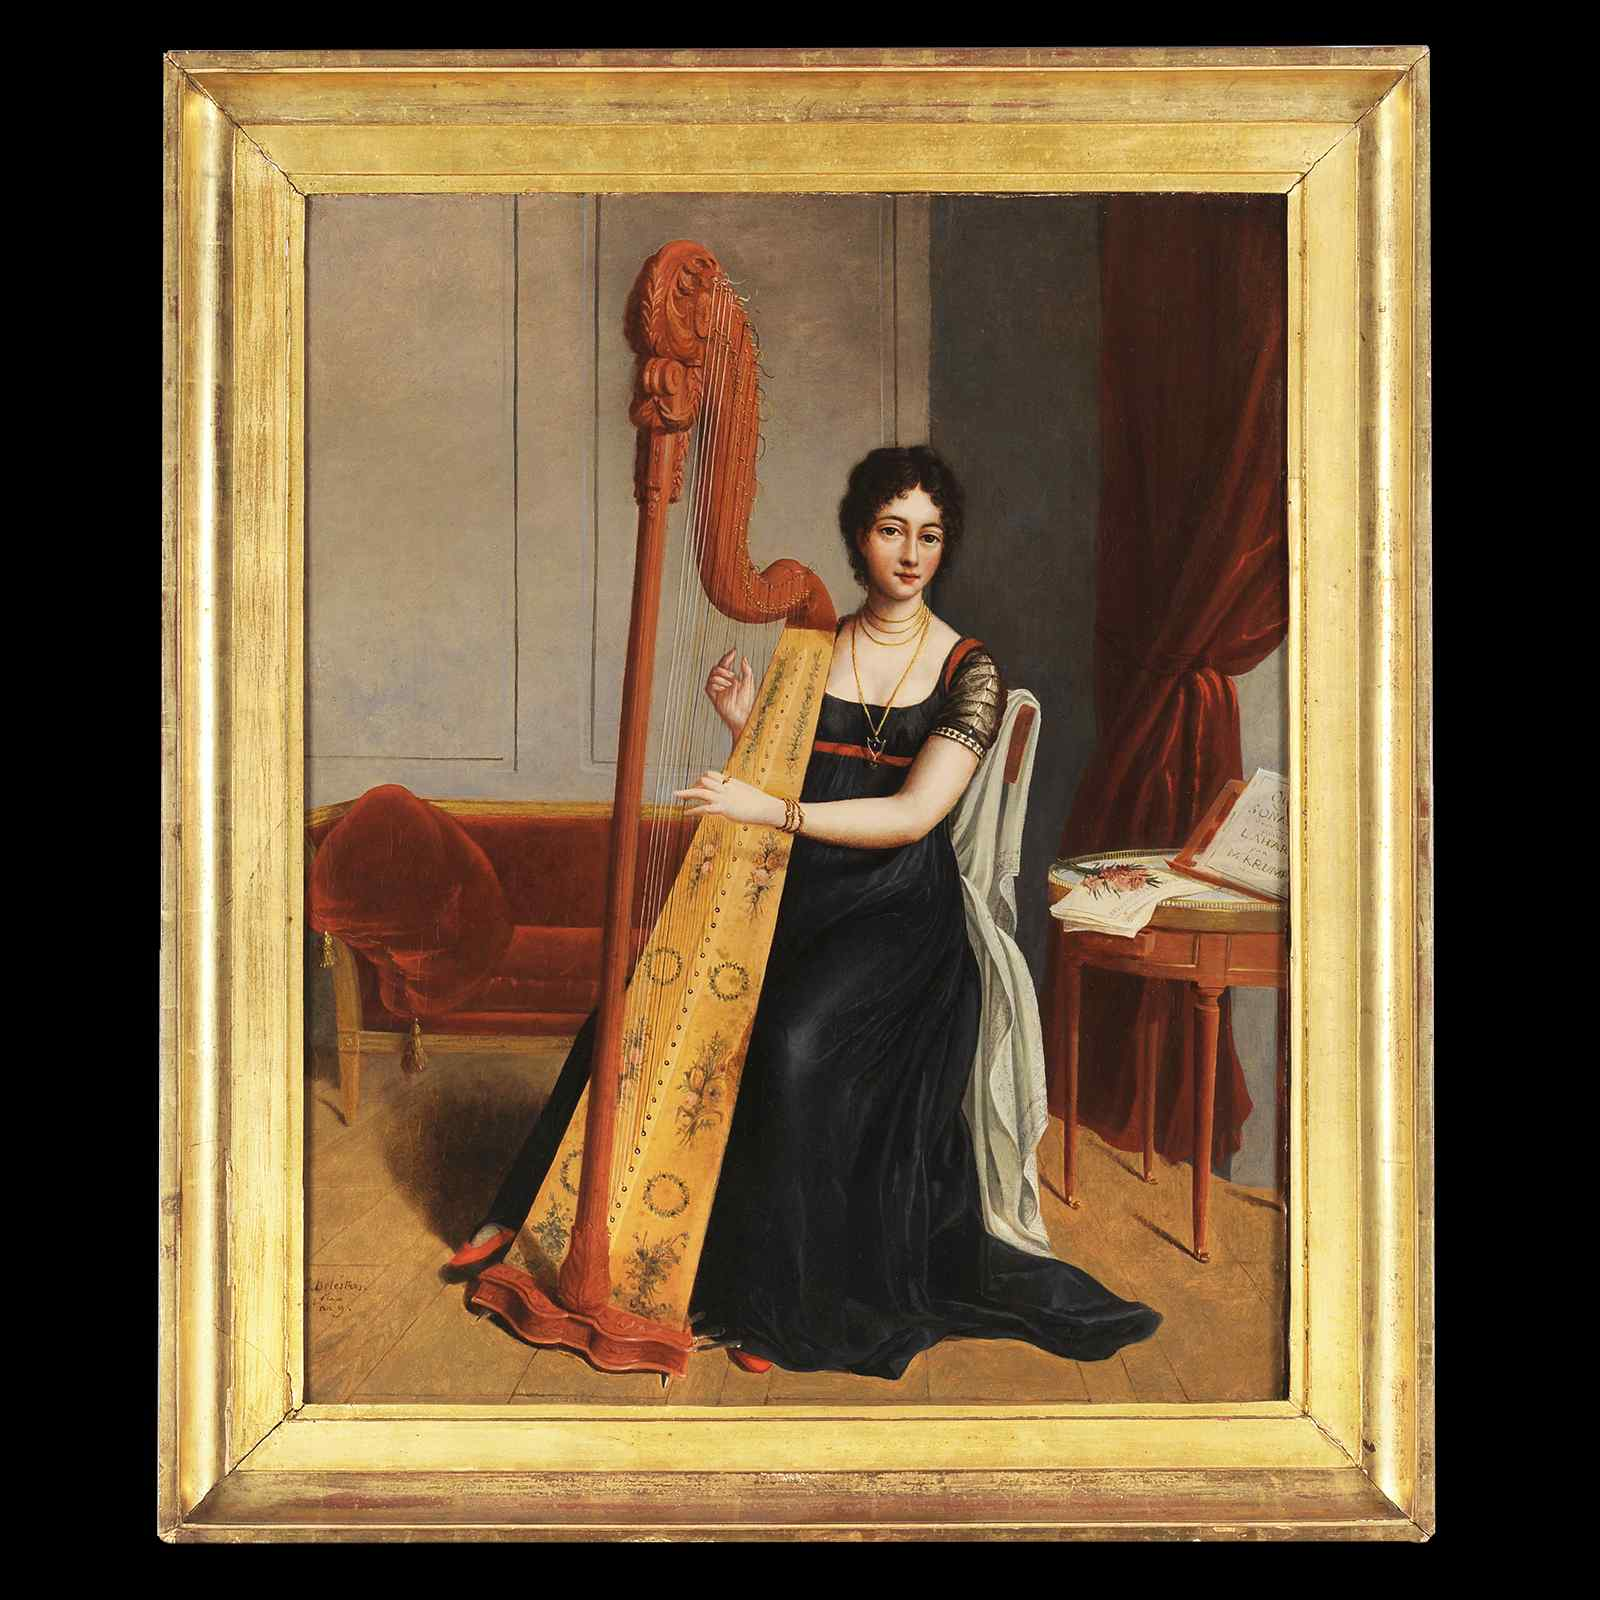 Portrait of a woman with a harp - Caroline Delestres